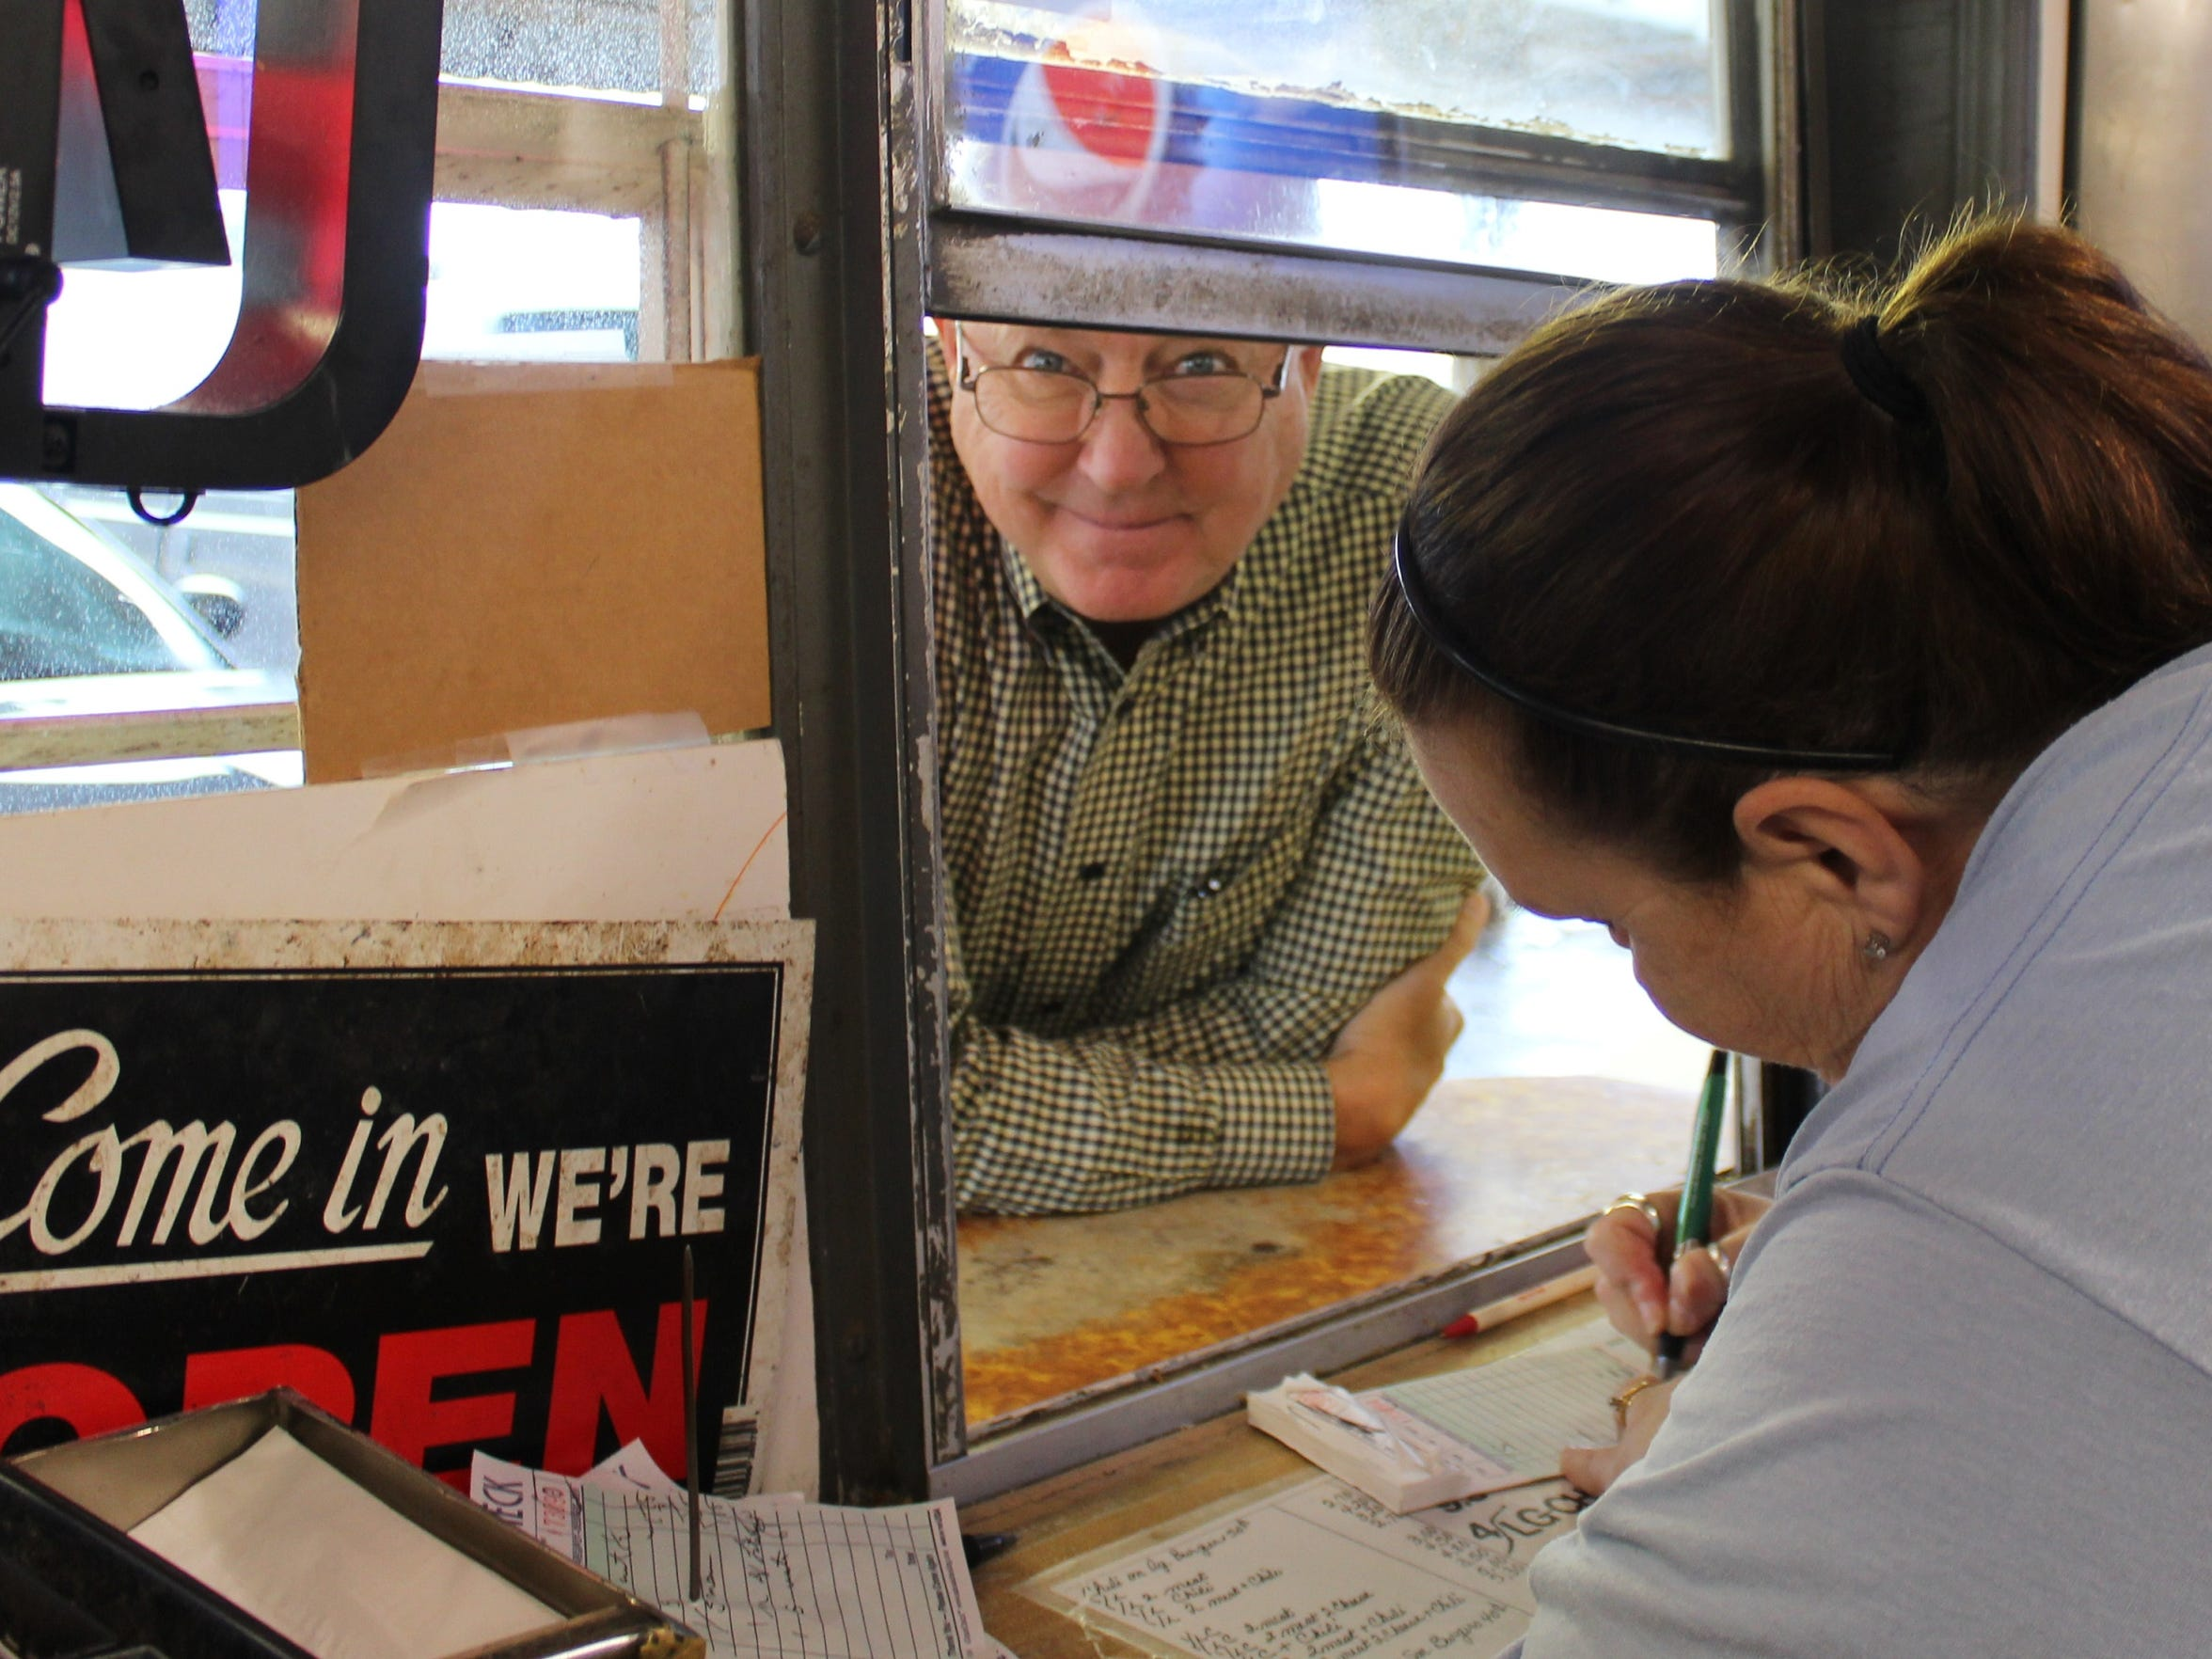 Kelly Yates takes a customer's order at one of two service windows at Larry's Better Burger. Her customer is all smiles thinking about what's for lunch. Many customers come to Larry's every week; a few, the owner said, come every day.